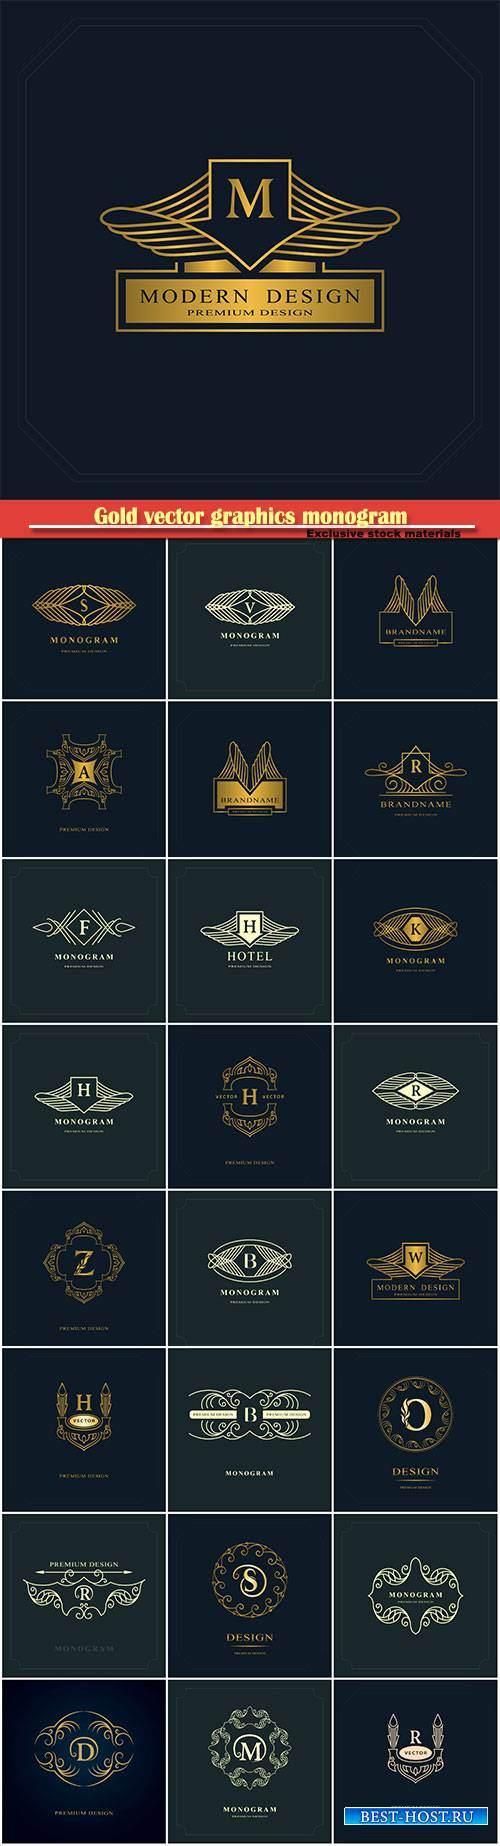 Gold vector graphics monogram, elegant logo design